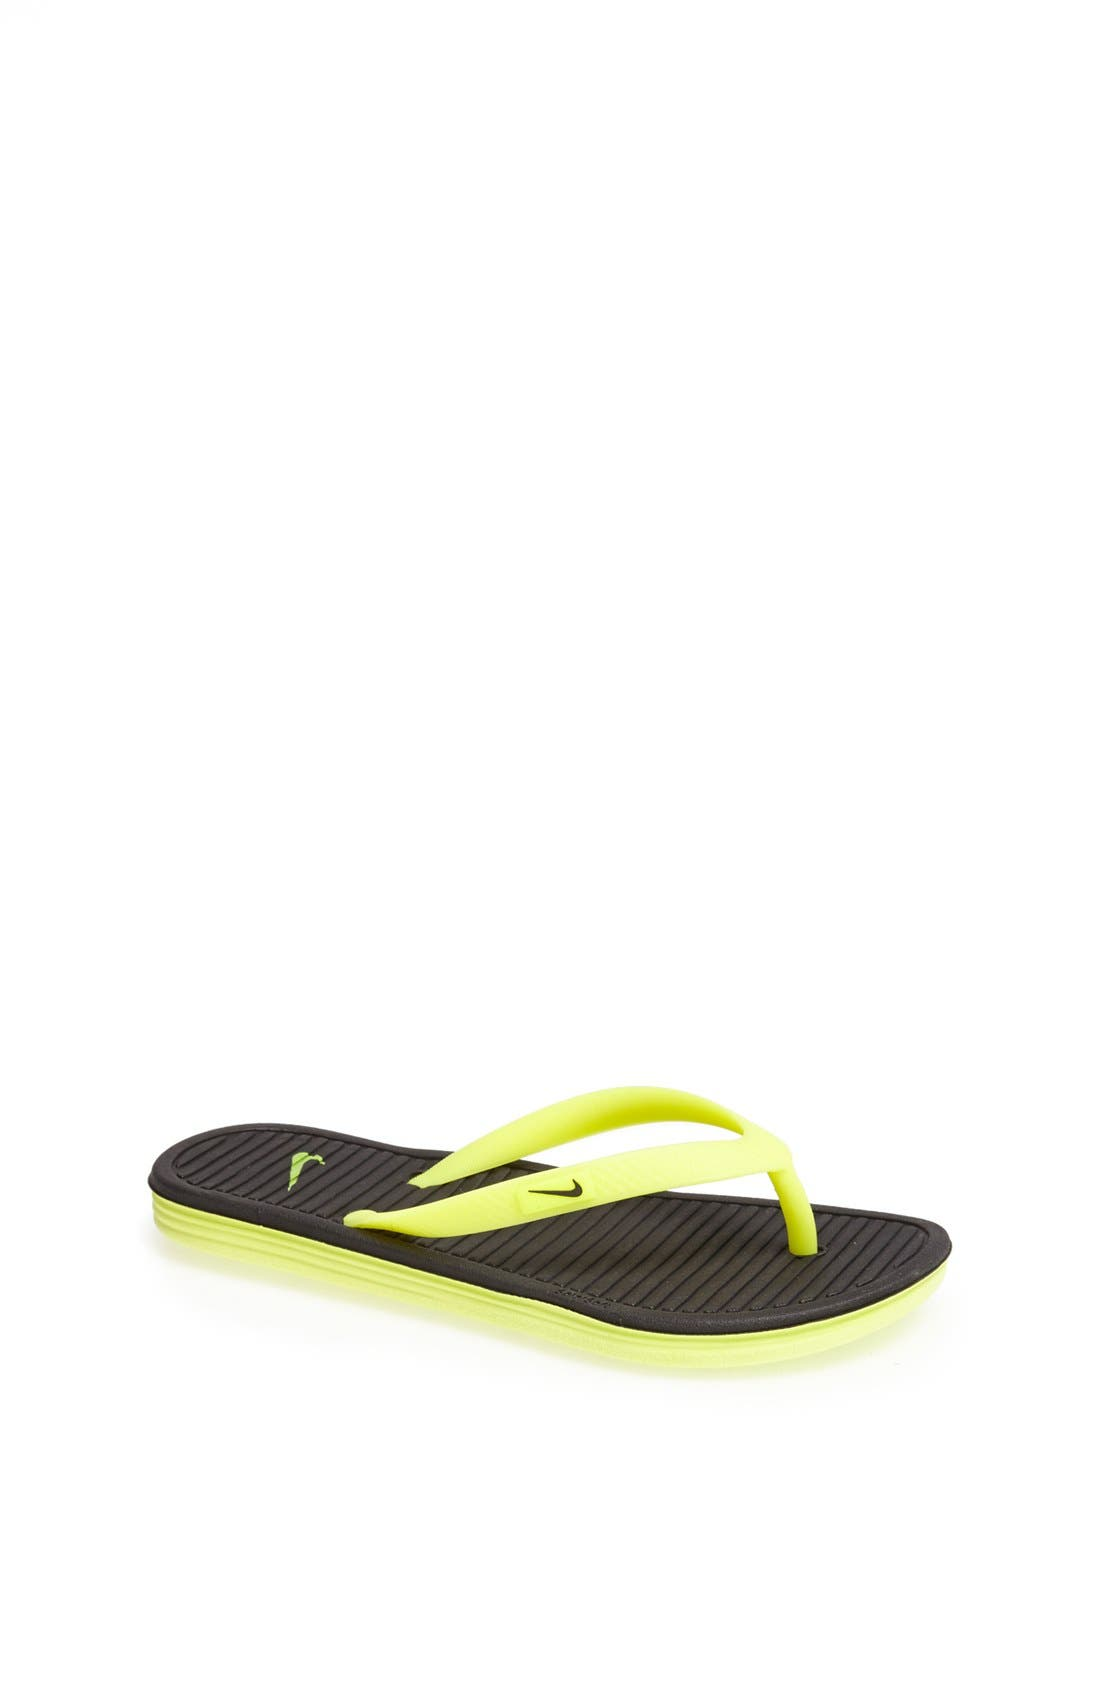 Alternate Image 1 Selected - Nike Solarsoft Thong Sandal (Toddler, Little Kid & Big Kid)